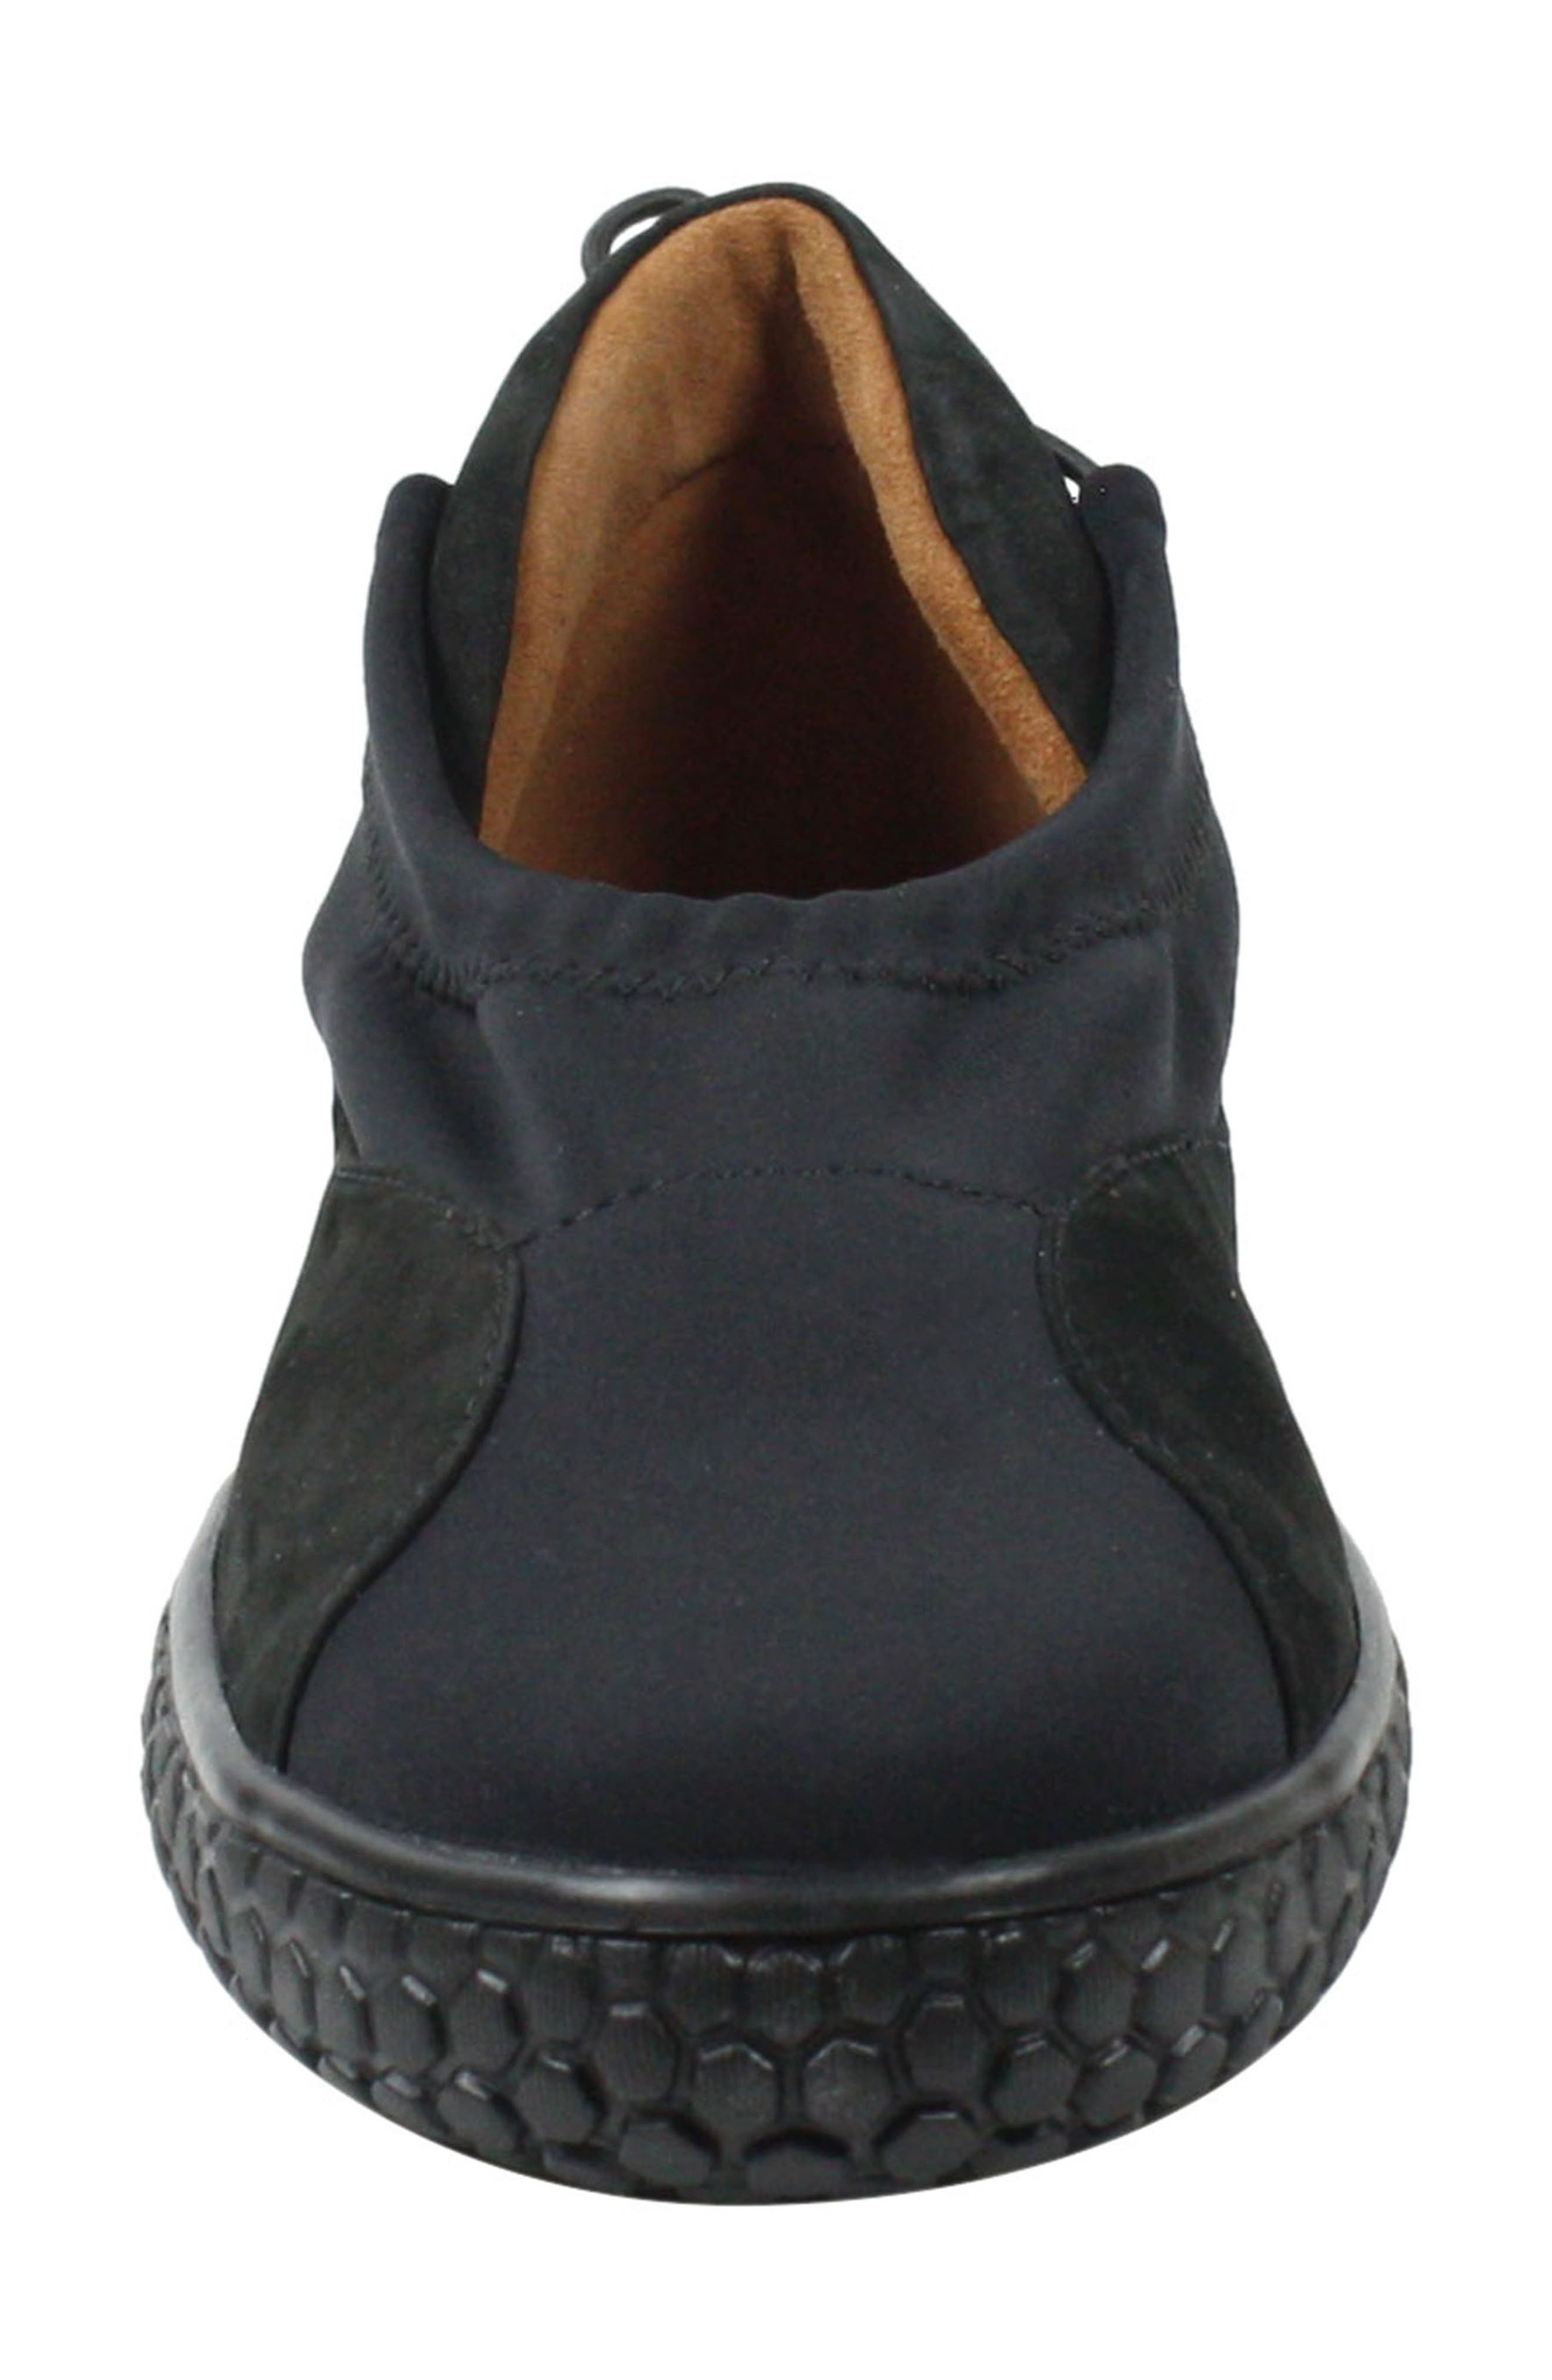 Zaidee Flat,                             Alternate thumbnail 4, color,                             BLACK NUBUCK LEATHER